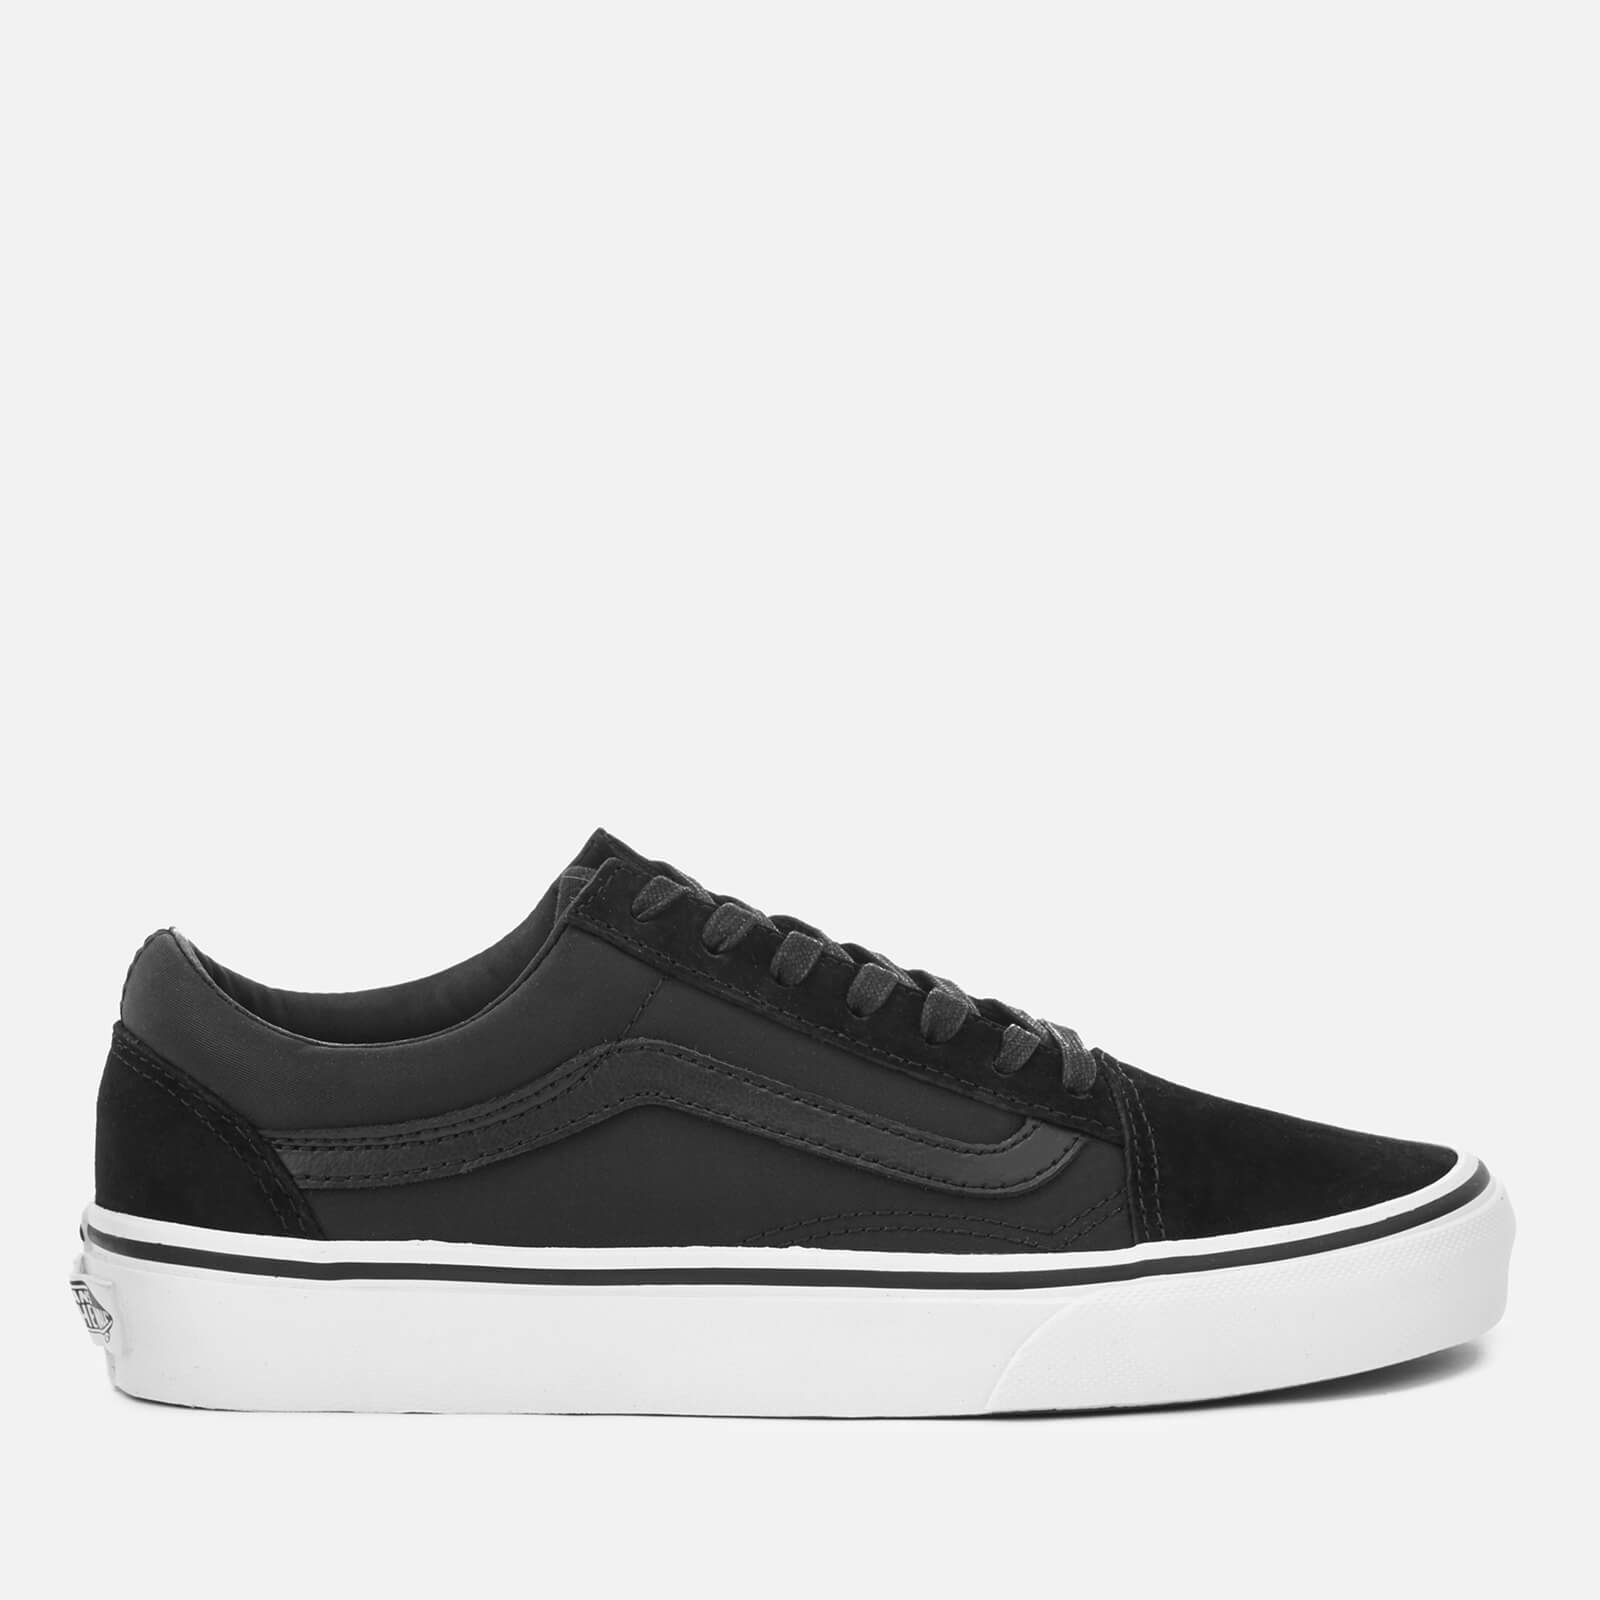 313b34a6ff5 Vans Women s Old Skool Boom Boom Trainers - Black True White - Free UK  Delivery over £50